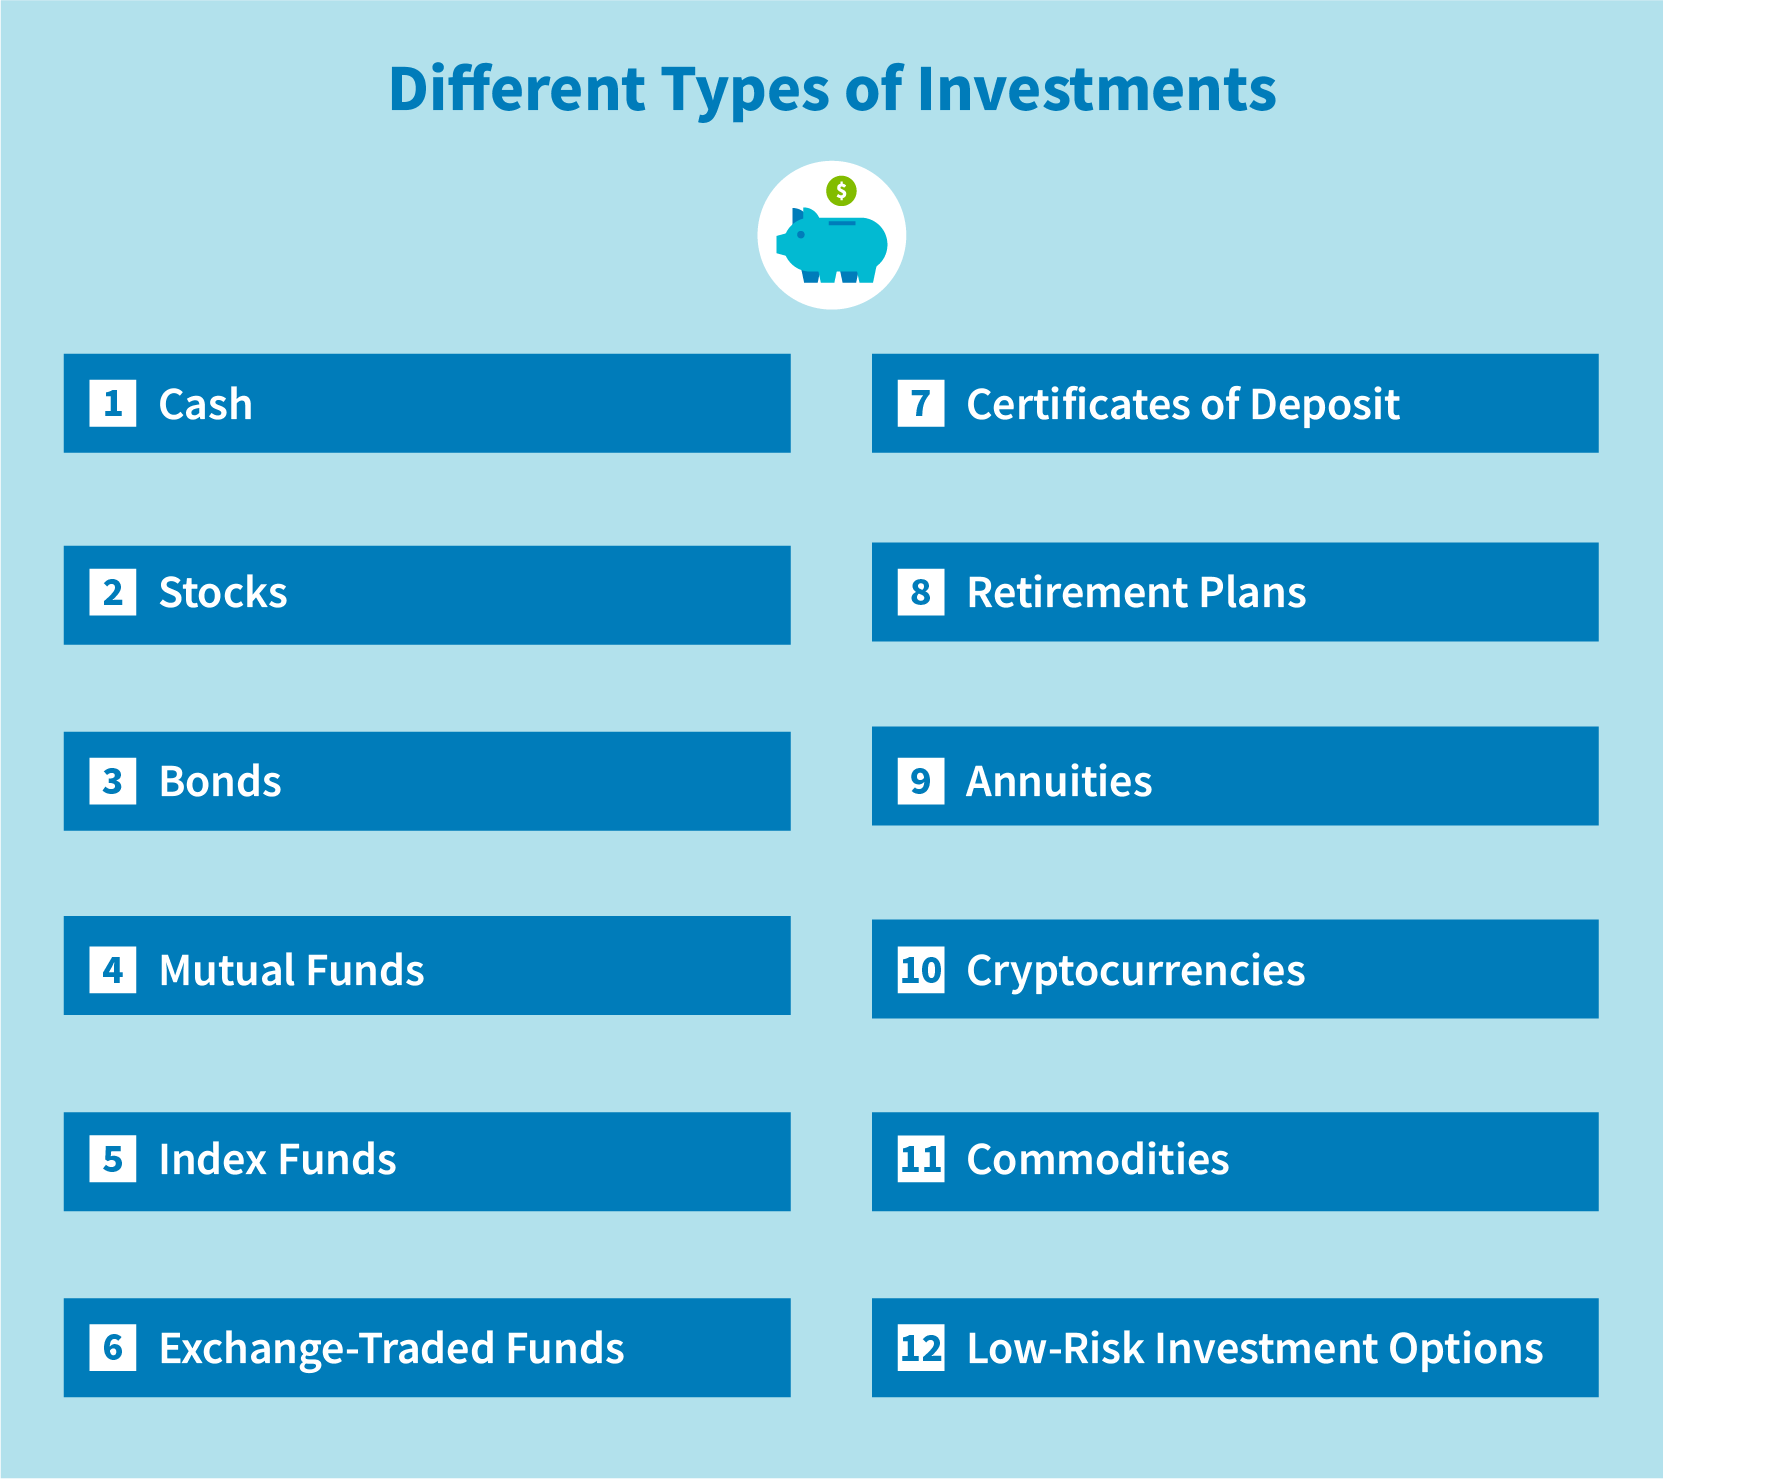 List of various investment types